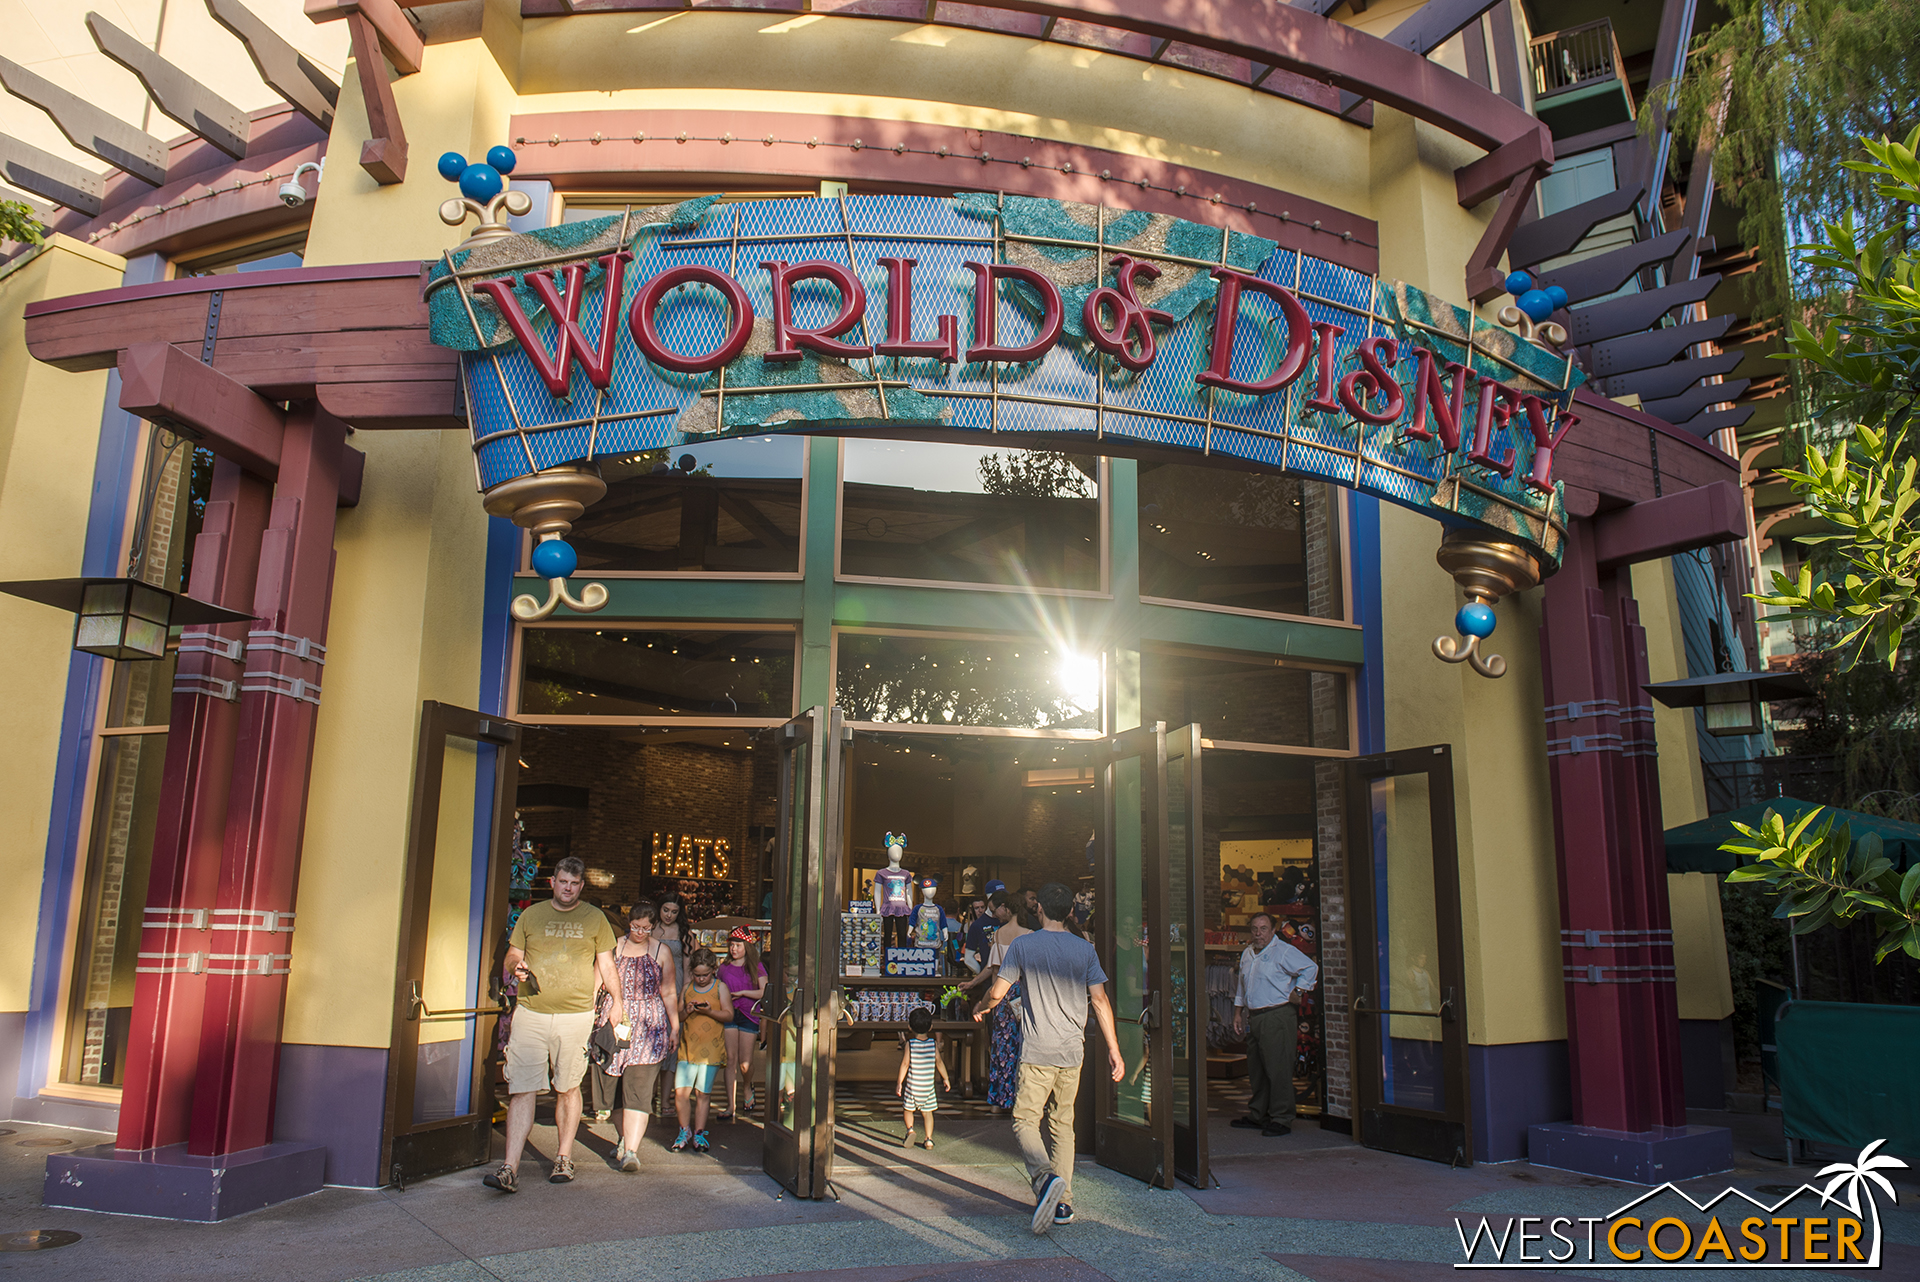 In contrast to the rest of the tenants at Downtown Disney, the World of Disney store hasn't really seen any exterior changes.